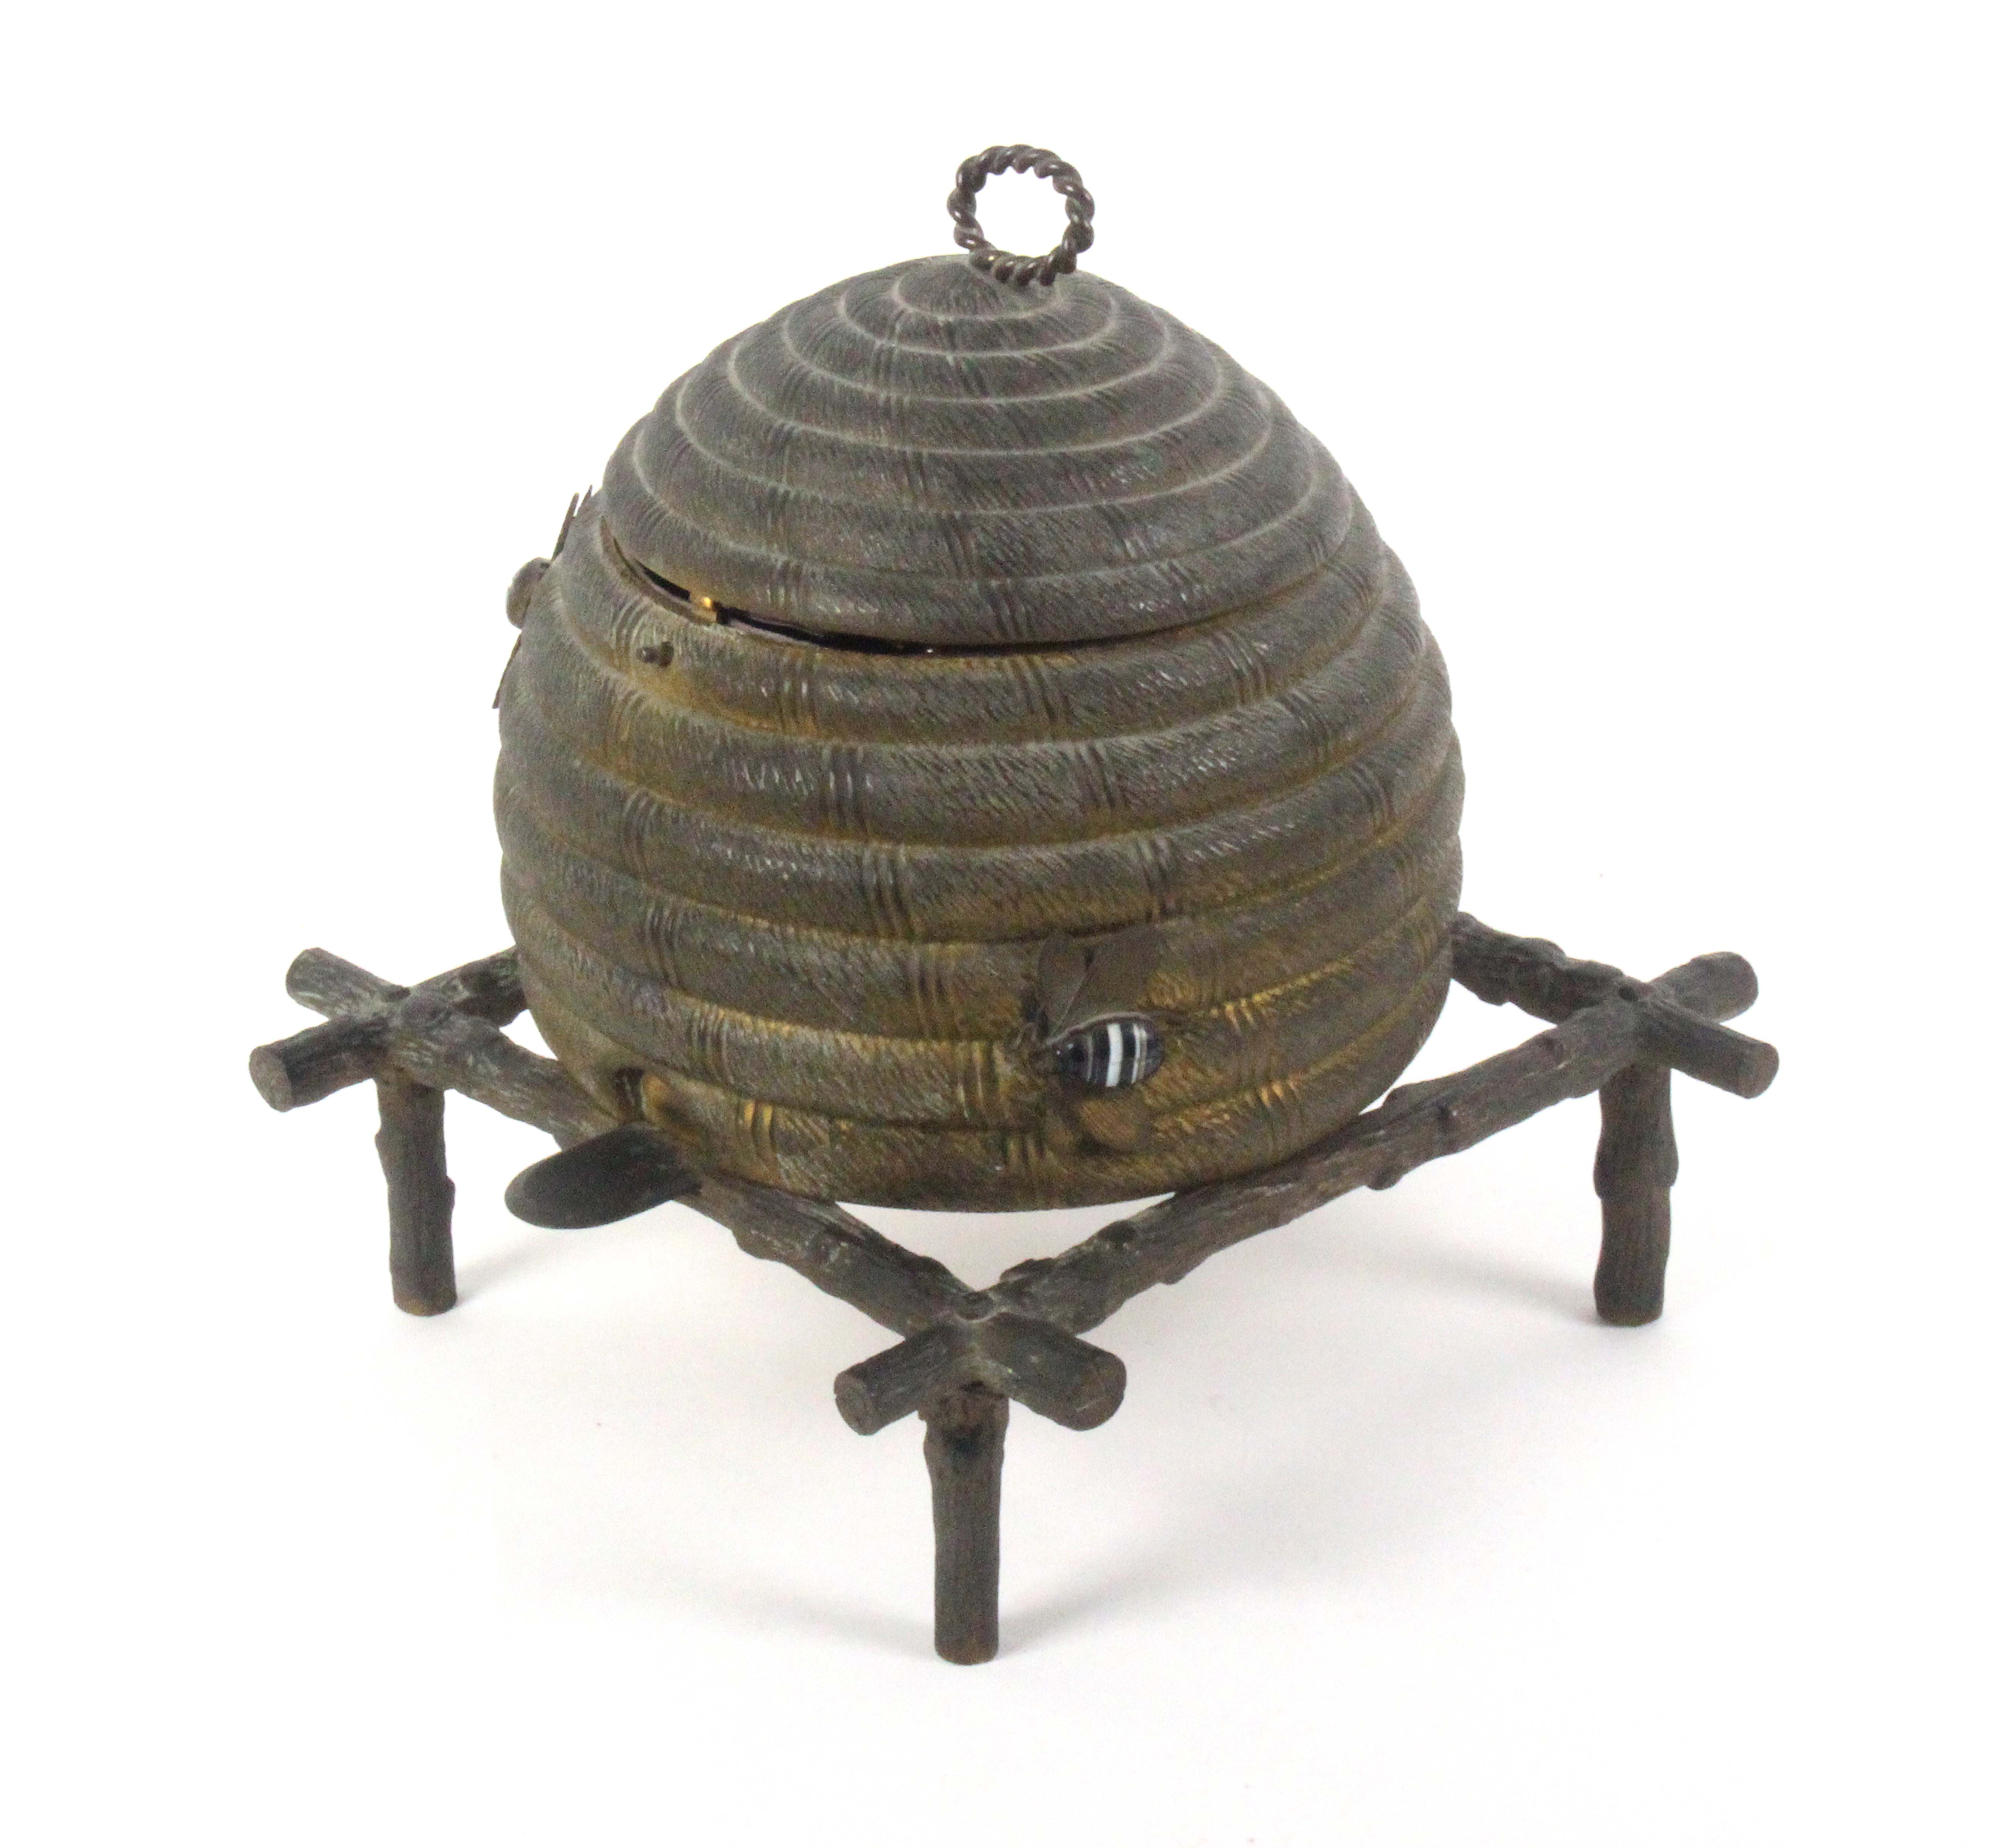 An unusual gilt metal sewing casket in the form of a bee skep, circa 1870, the surface dull, - Image 3 of 3